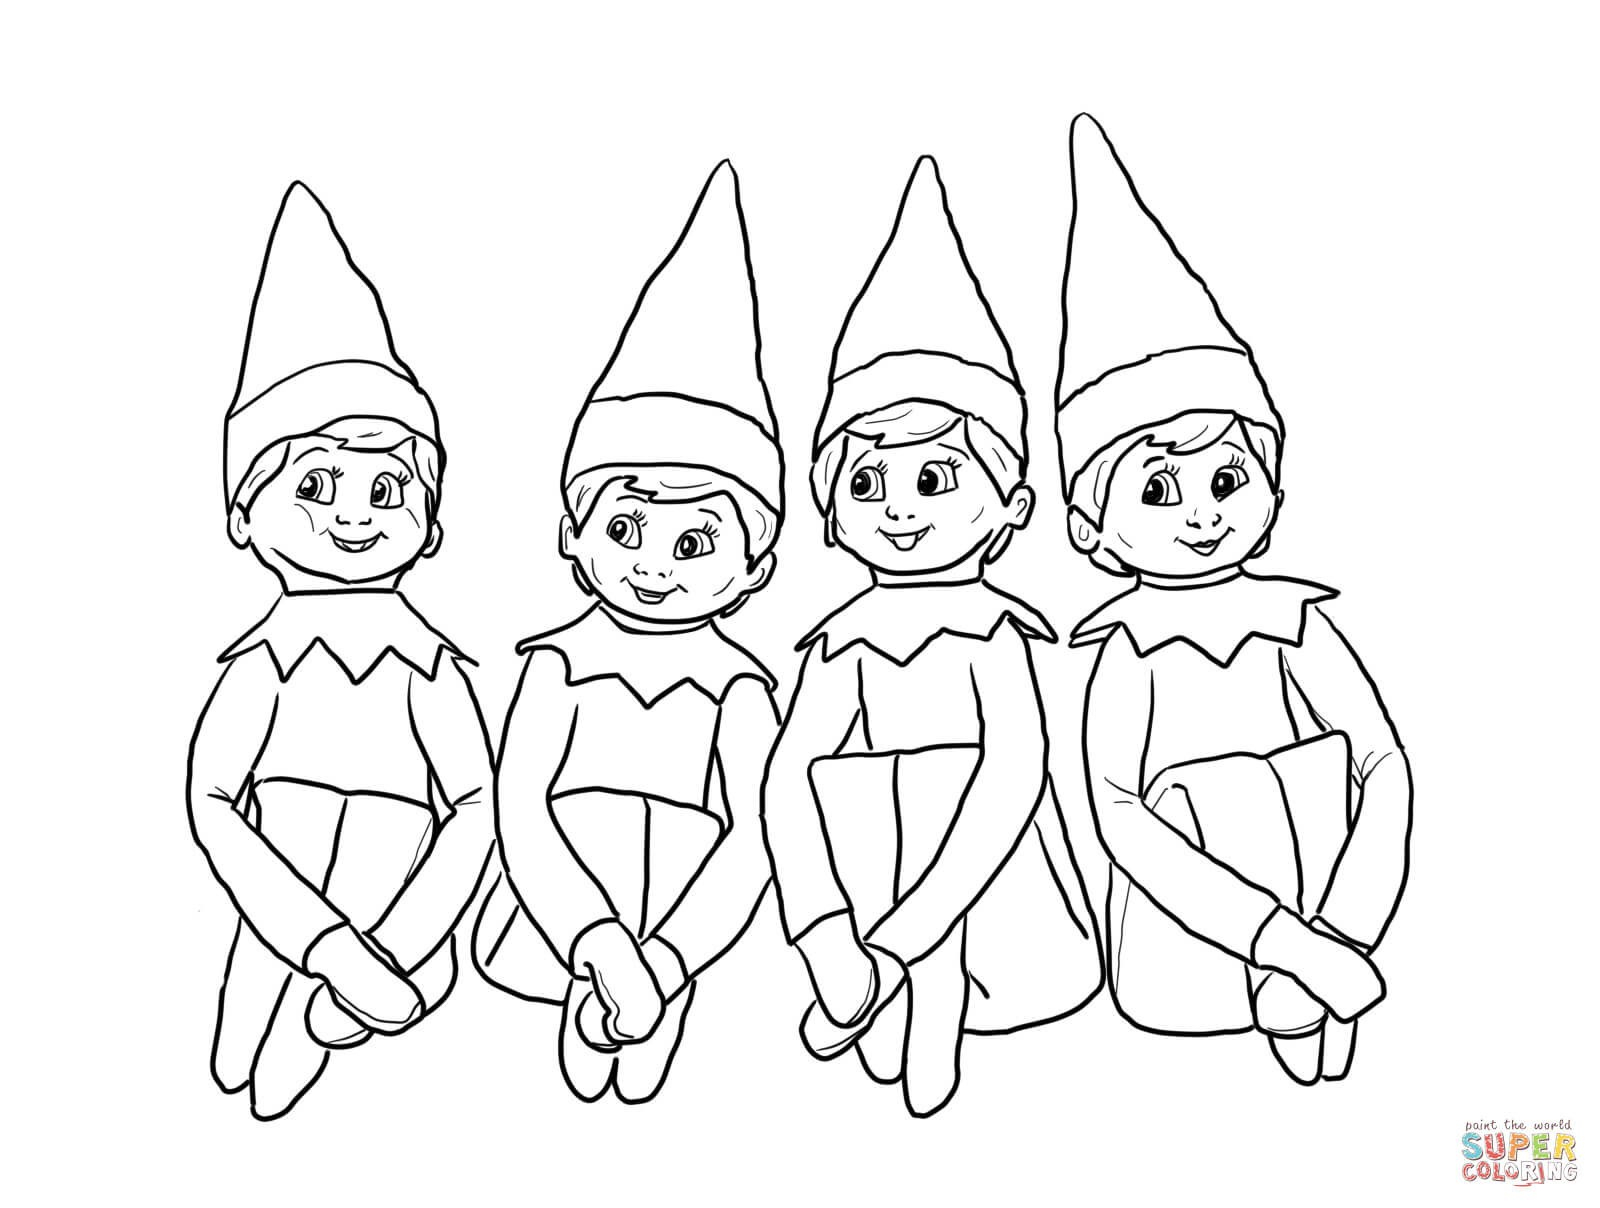 Elf Coloring Pages Printable Coloring Ideas Elf Coloring Pages Printable Ideas Christmas